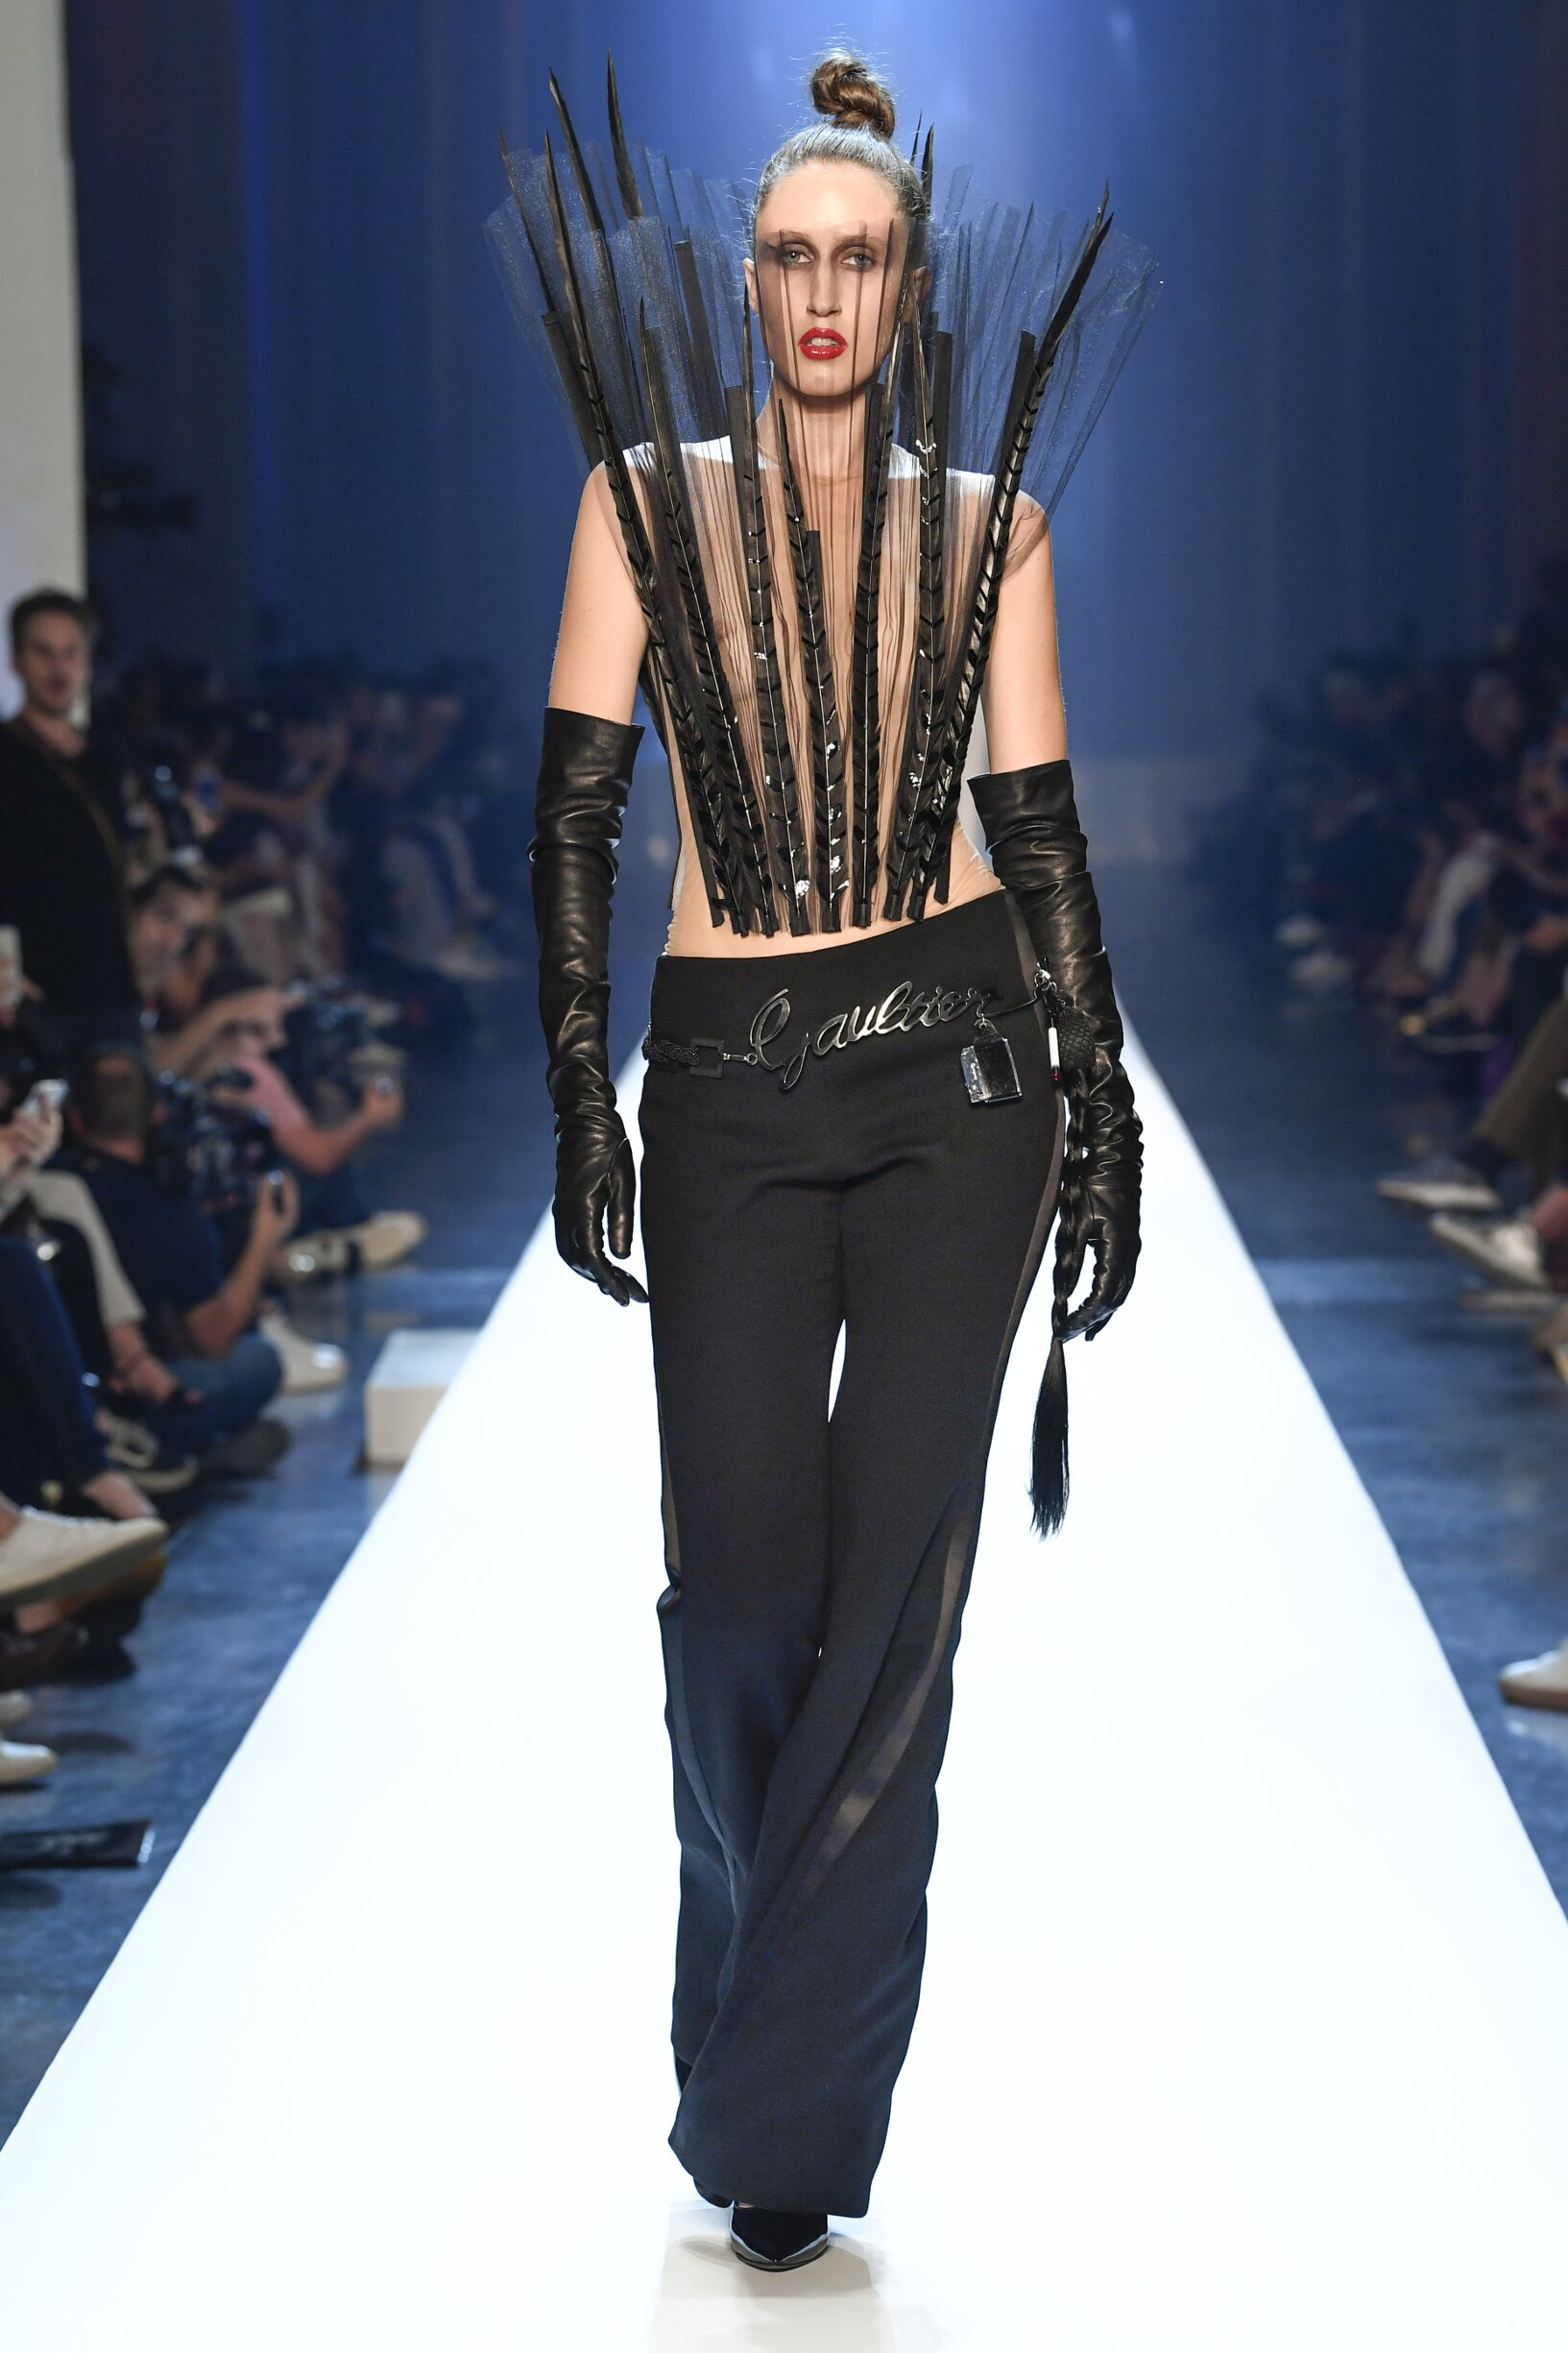 Jean-Paul Gaultier Haute Couture Womenswear Collection Trends Winter